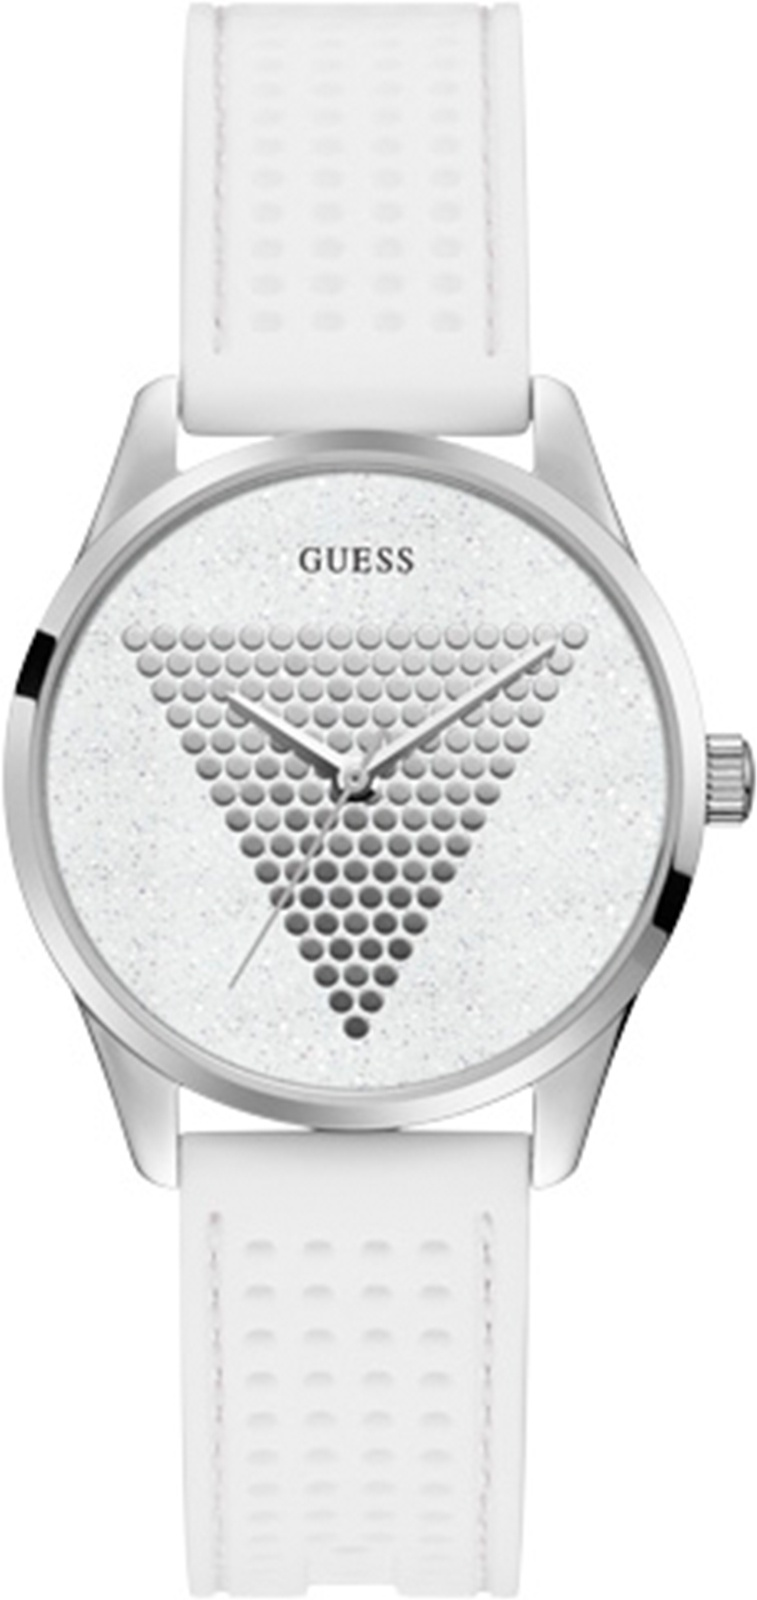 Часы Guess MINI IMPRINT все цены